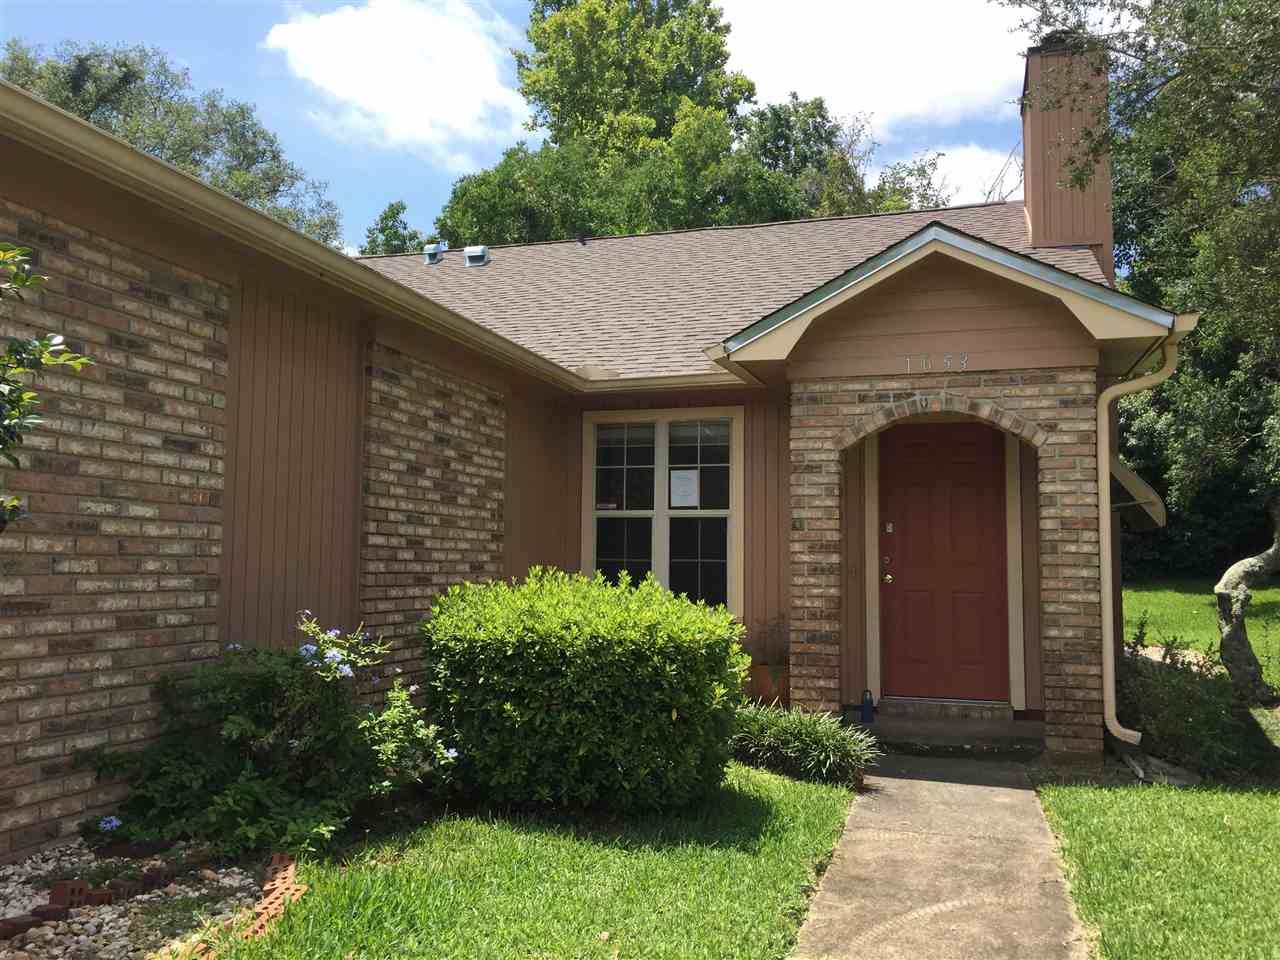 1653 TWIN LAKES Circle, Tallahassee, FL 32301 - MLS#: 320885